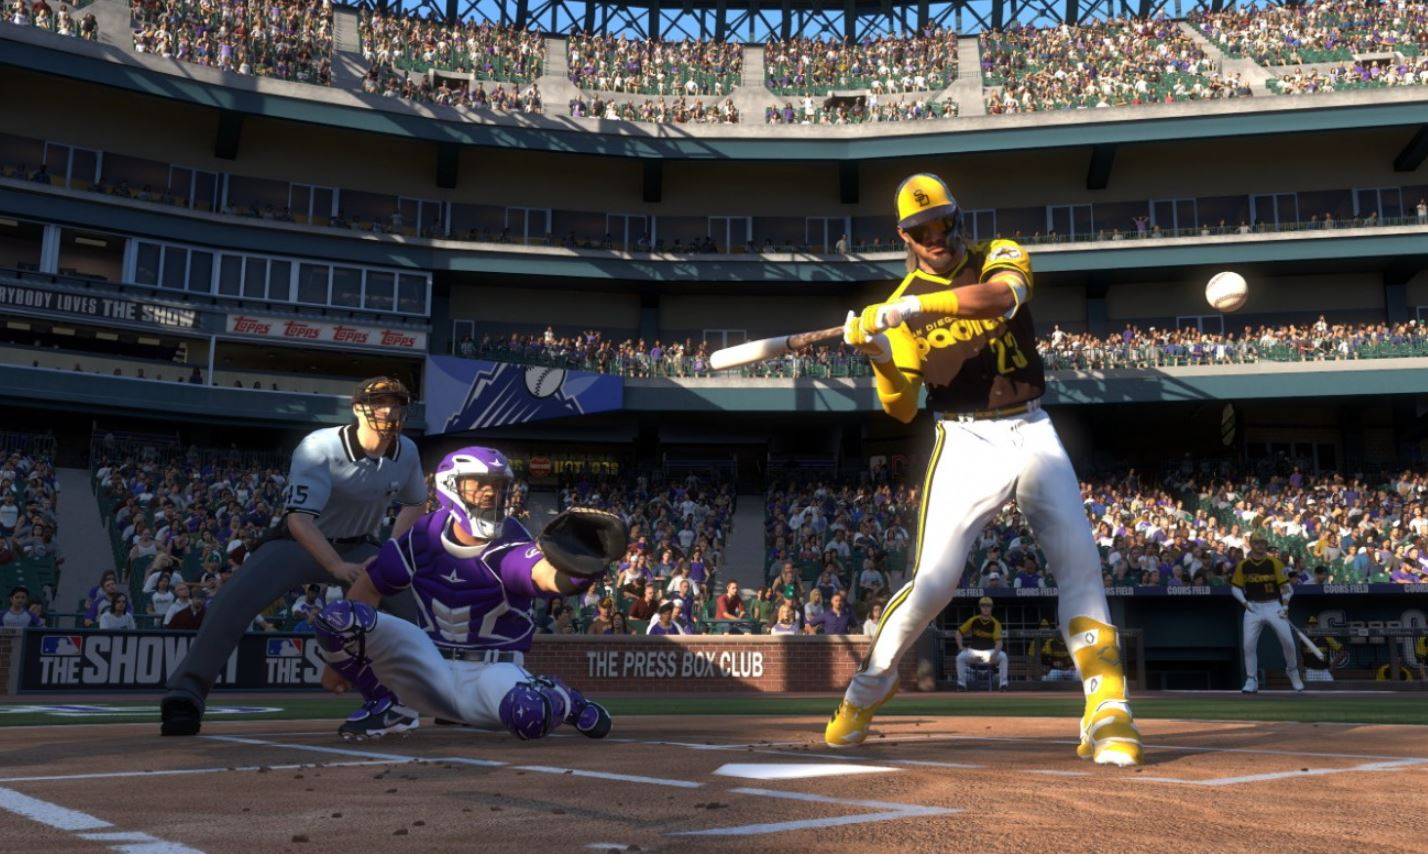 sony-claims-it-was-the-mlbs-decision-to-release-mlb-the-show-21-directly-into-xbox-games-pass